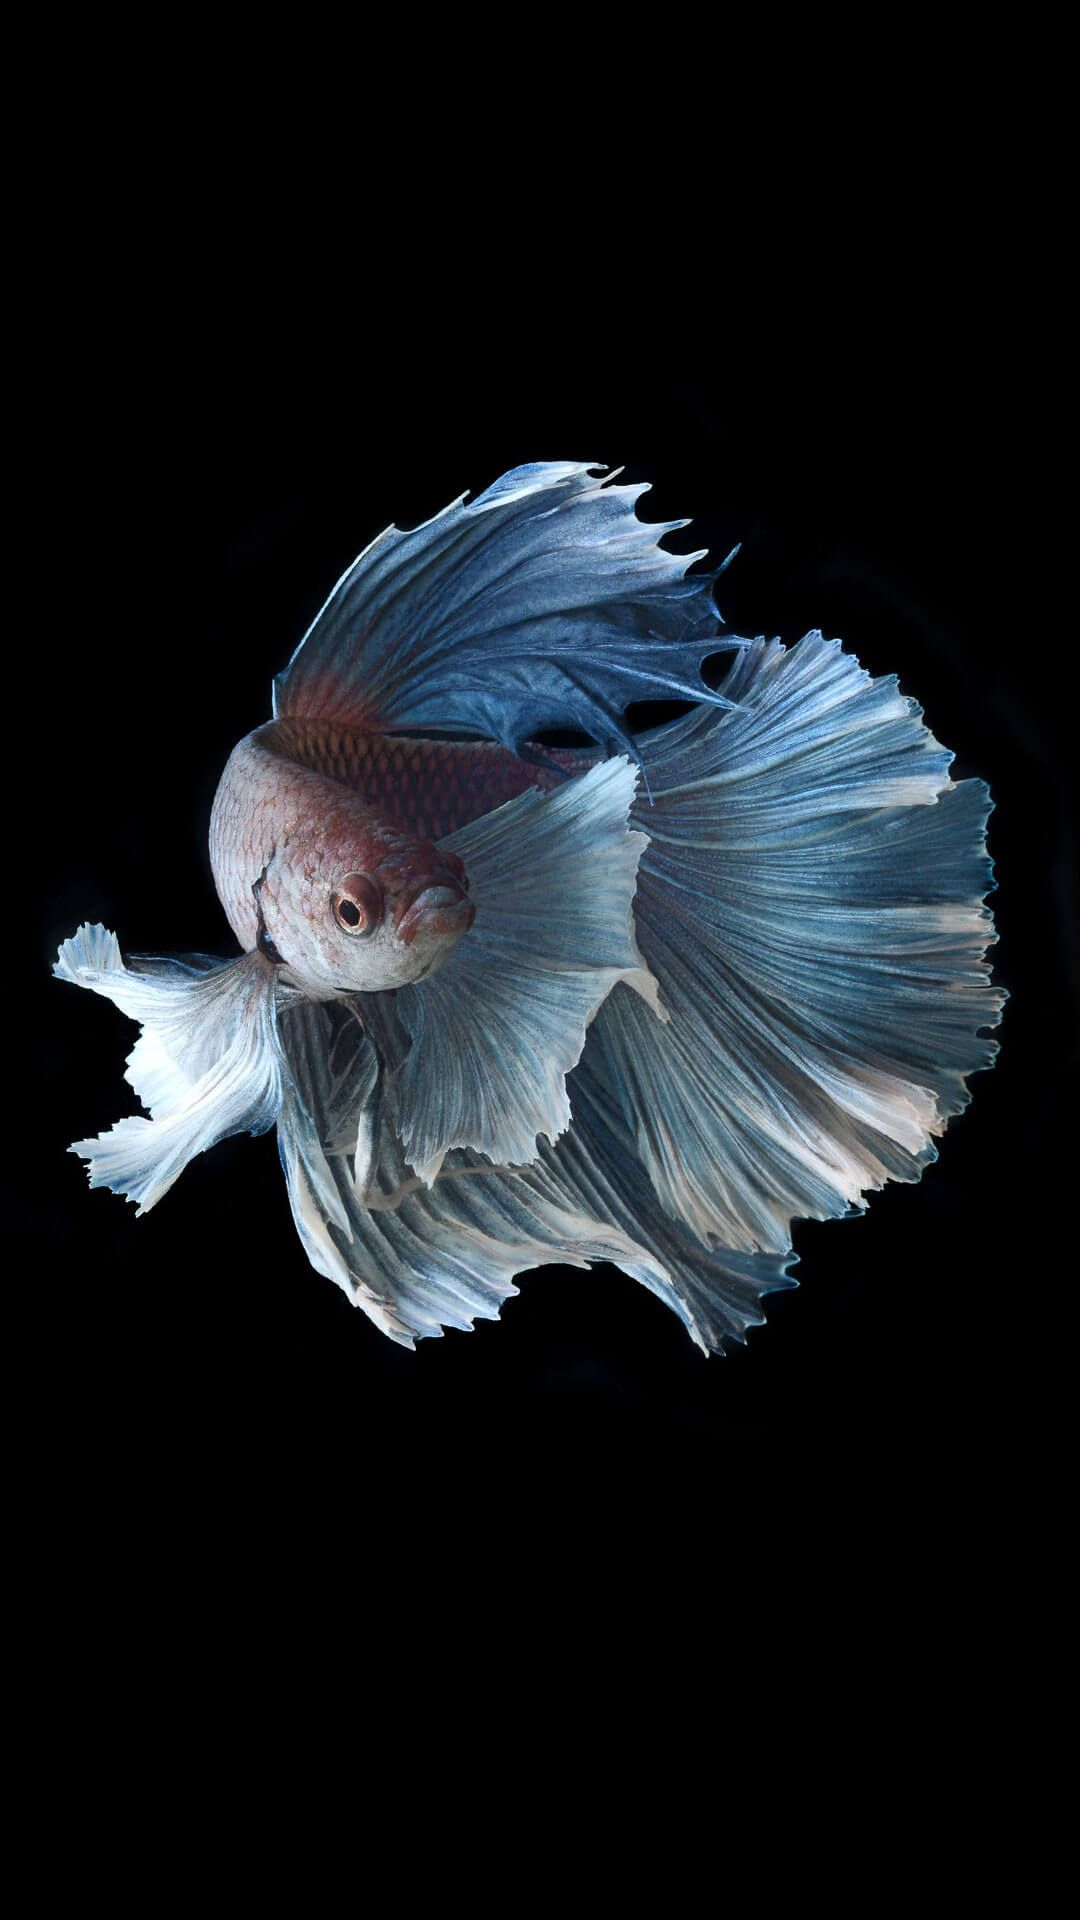 Finding The Best Betta Fish Food For Your Betta Fish Betta Fish Care Fish Wallpaper Betta Fish Betta